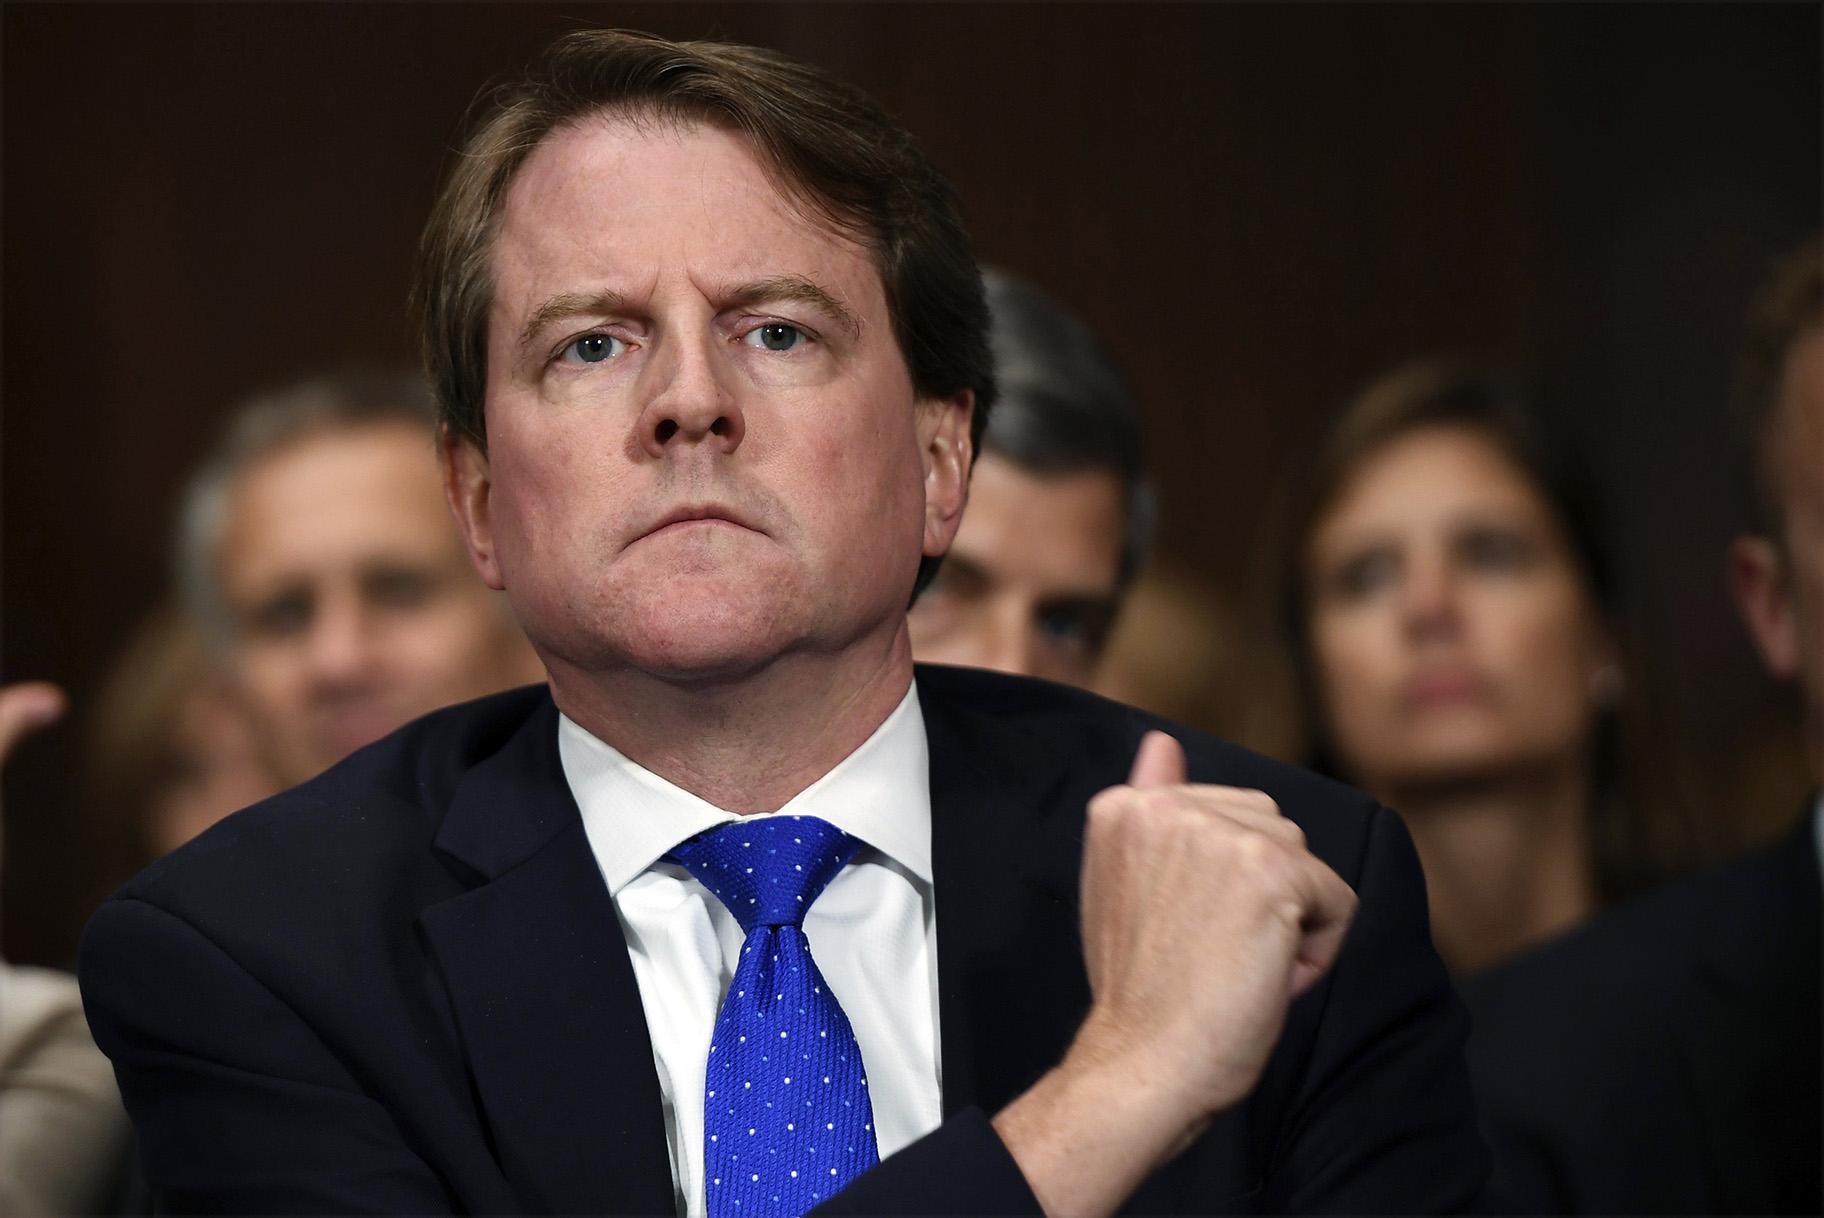 In this Sept. 27, 2018, file photo, then-White House counsel Don McGahn listens as Supreme Court nominee Brett Kavanaugh testifies before the Senate Judiciary Committee on Capitol Hill in Washington. (Saul Loeb / Pool Photo via AP, File)